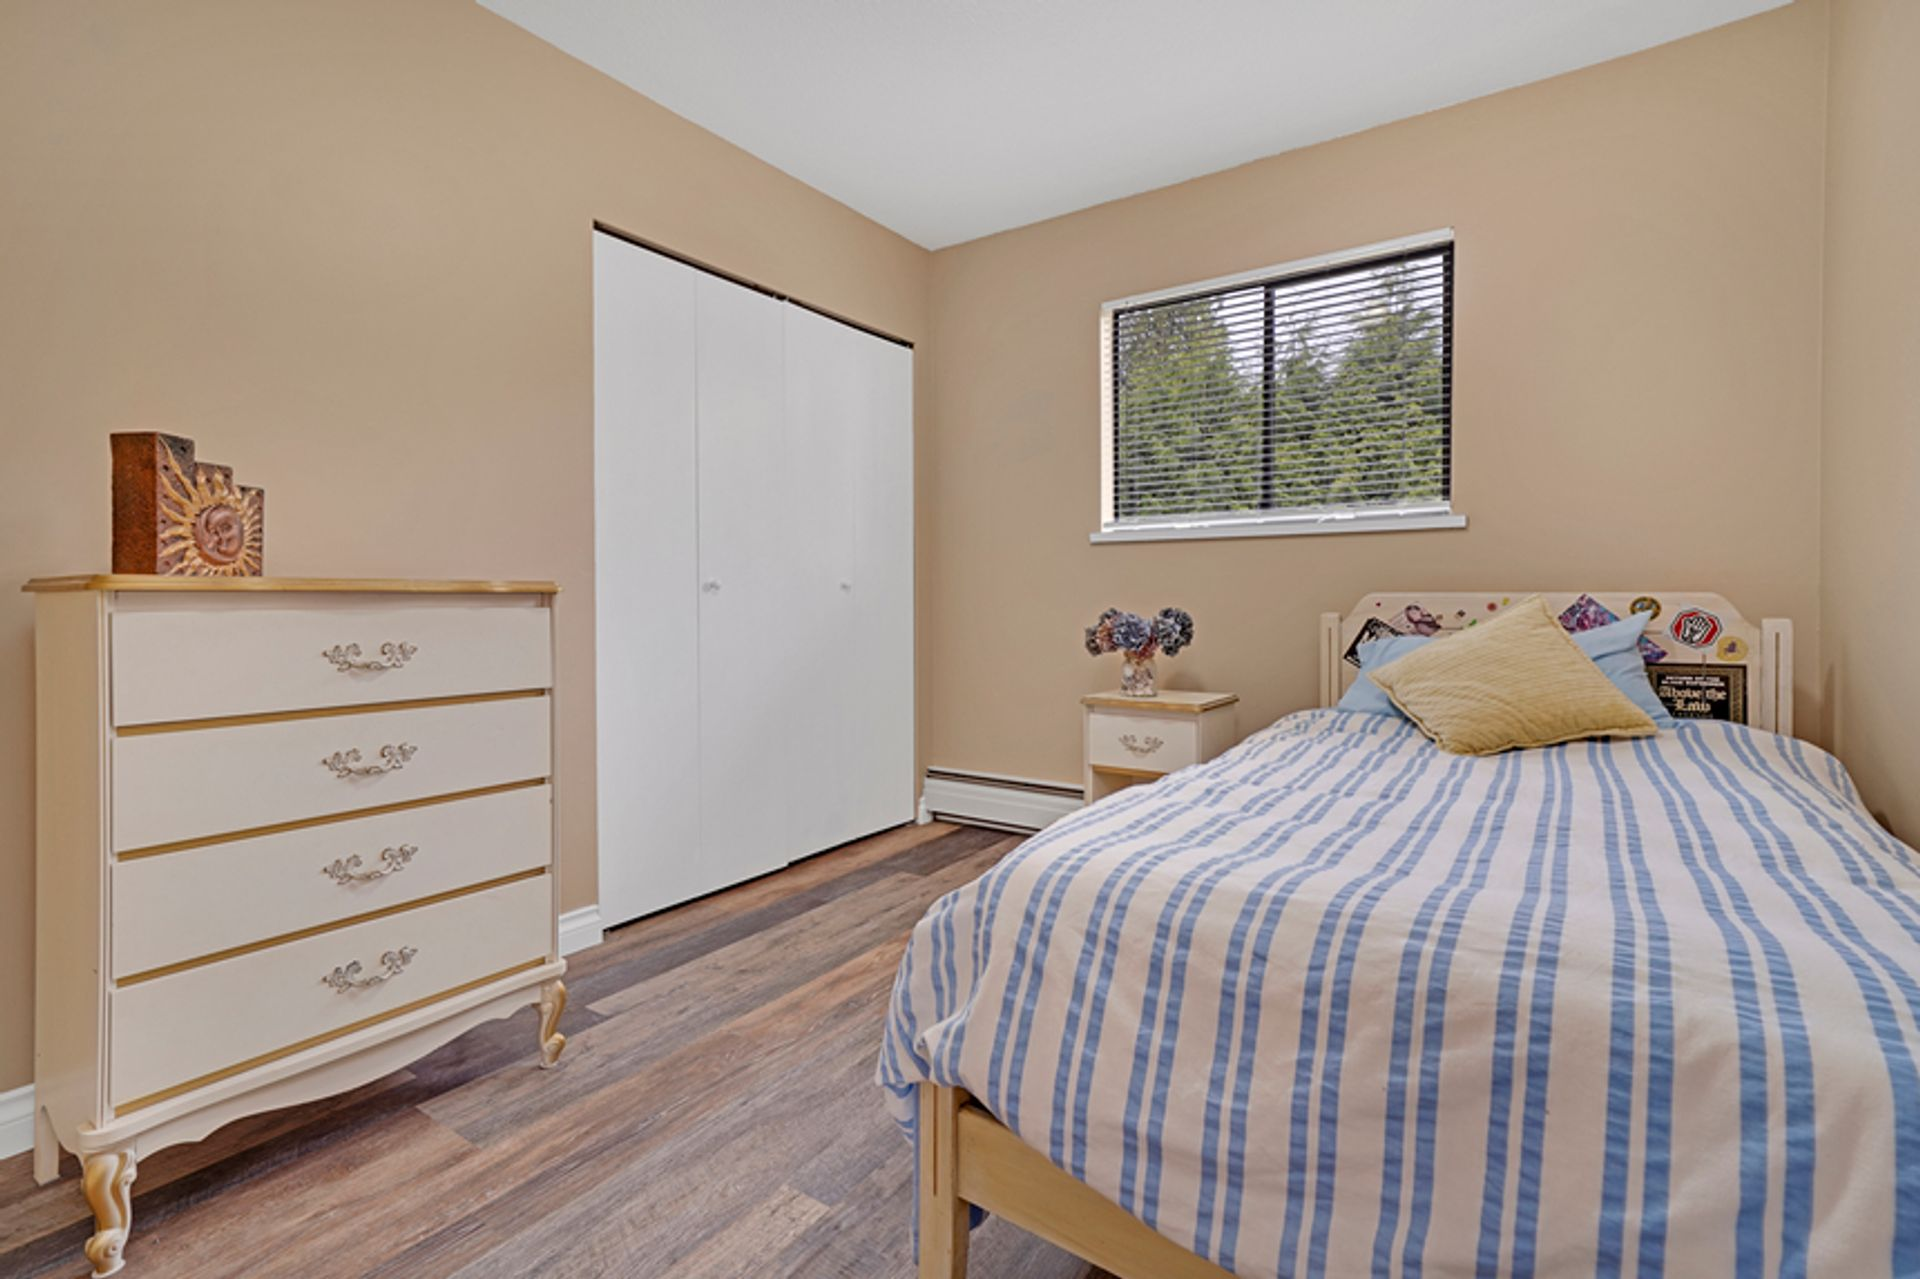 3f-above-bedroom-24 at 836 Irvine Street, Meadow Brook, Coquitlam